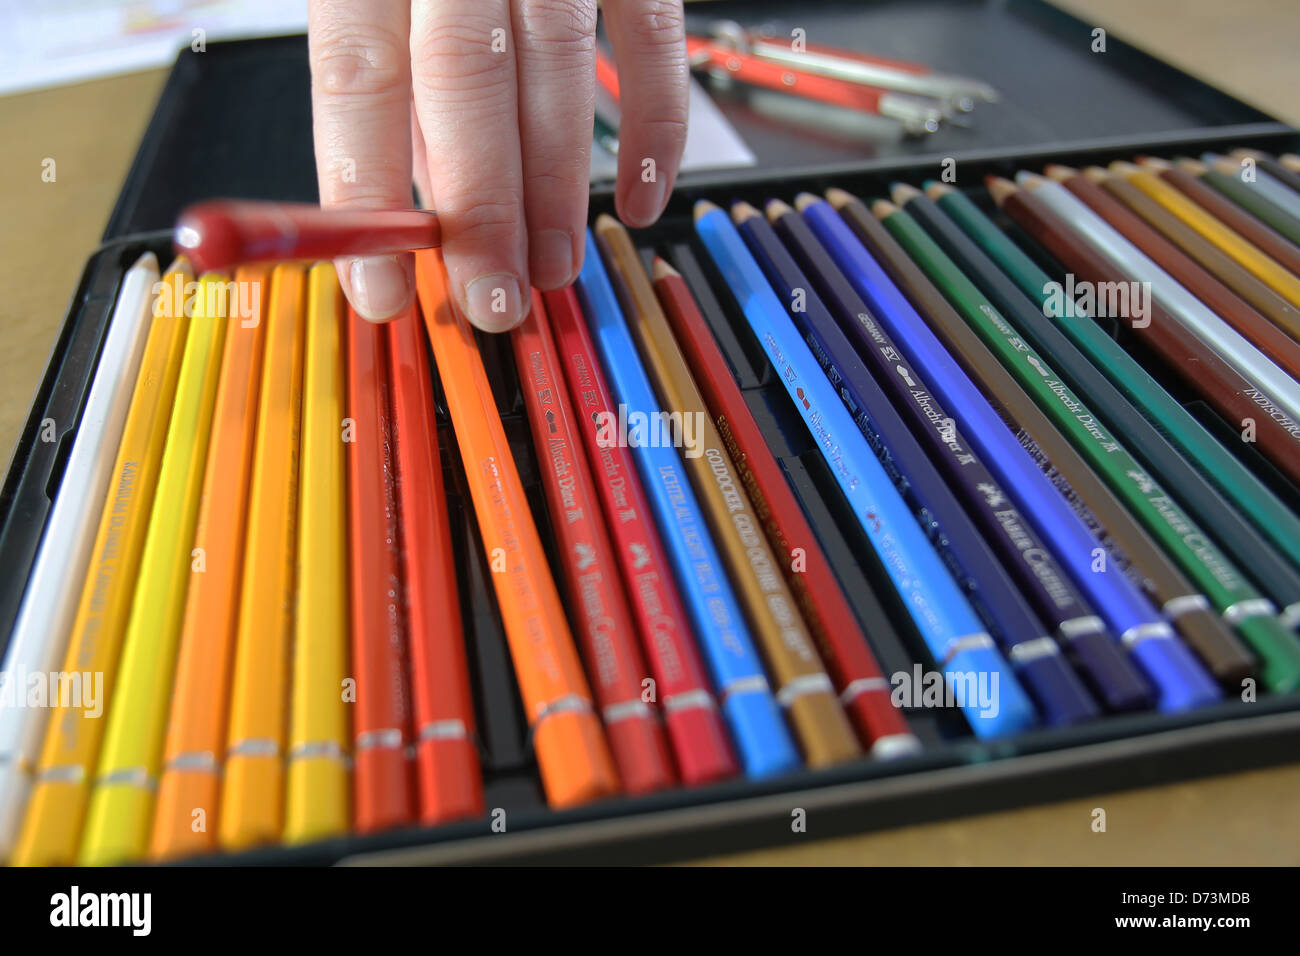 faber castell pencil stock photos faber castell pencil stock images alamy. Black Bedroom Furniture Sets. Home Design Ideas